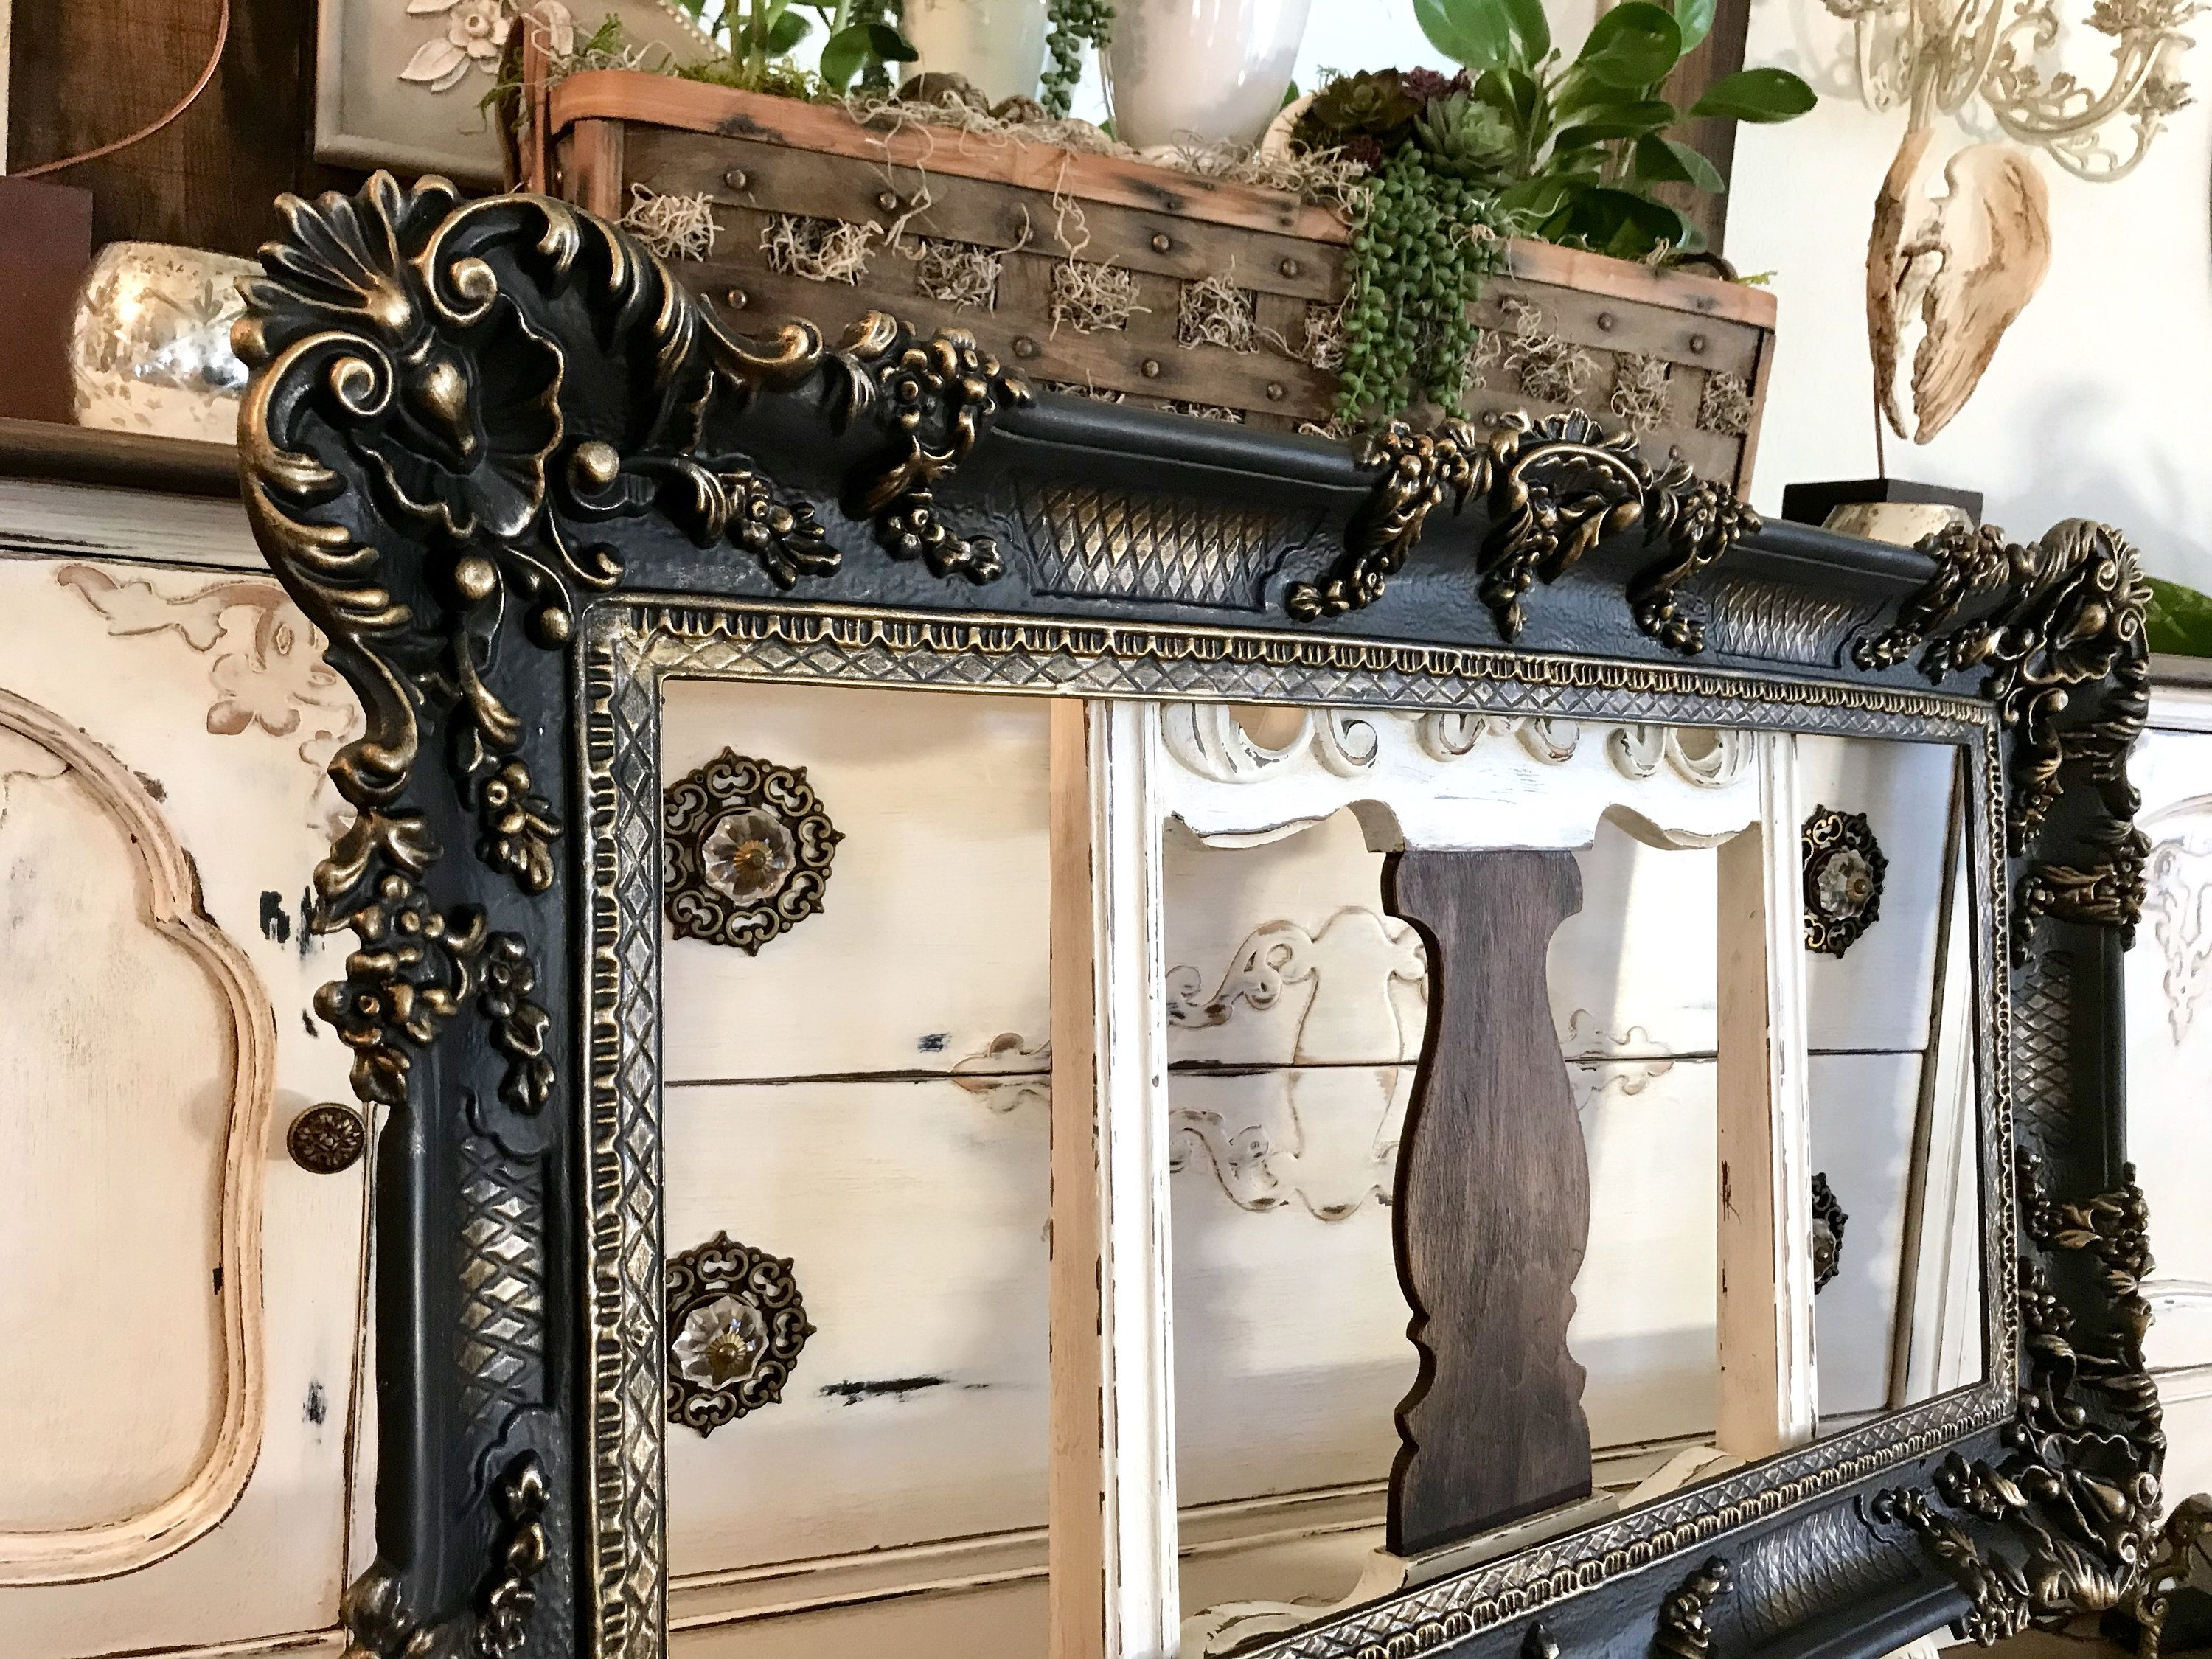 Large Ornate Black Wall Frame With Gold Highlighting Huge Vintage Flat Black And Gold Frame Huge 37 X 21 5 Black And Gold Frame Gold Ornate Mirror Gold Framed